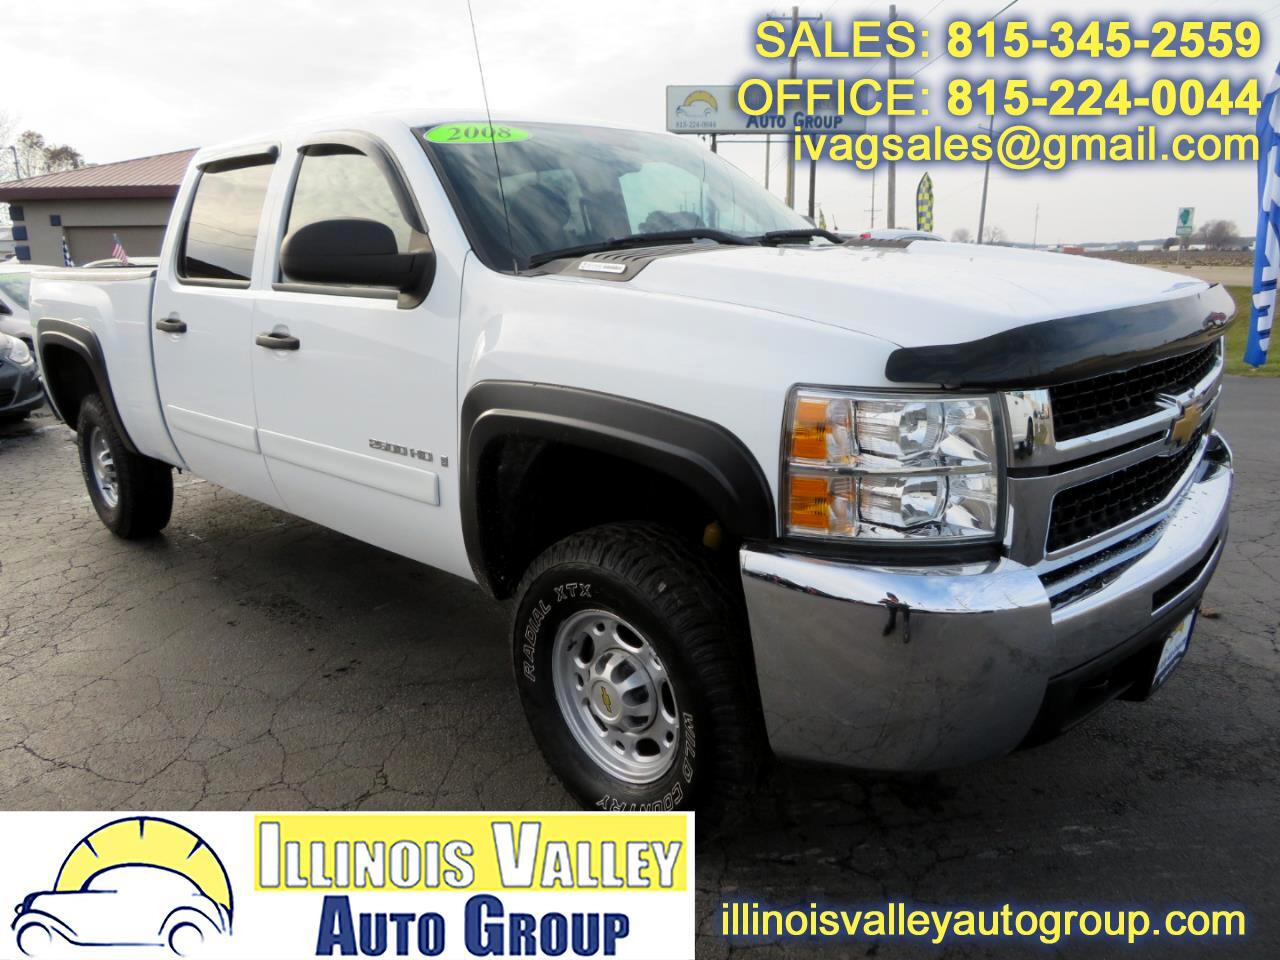 2008 Chevrolet Silverado 2500HD LT1 Crew Cab Short Bed 4WD